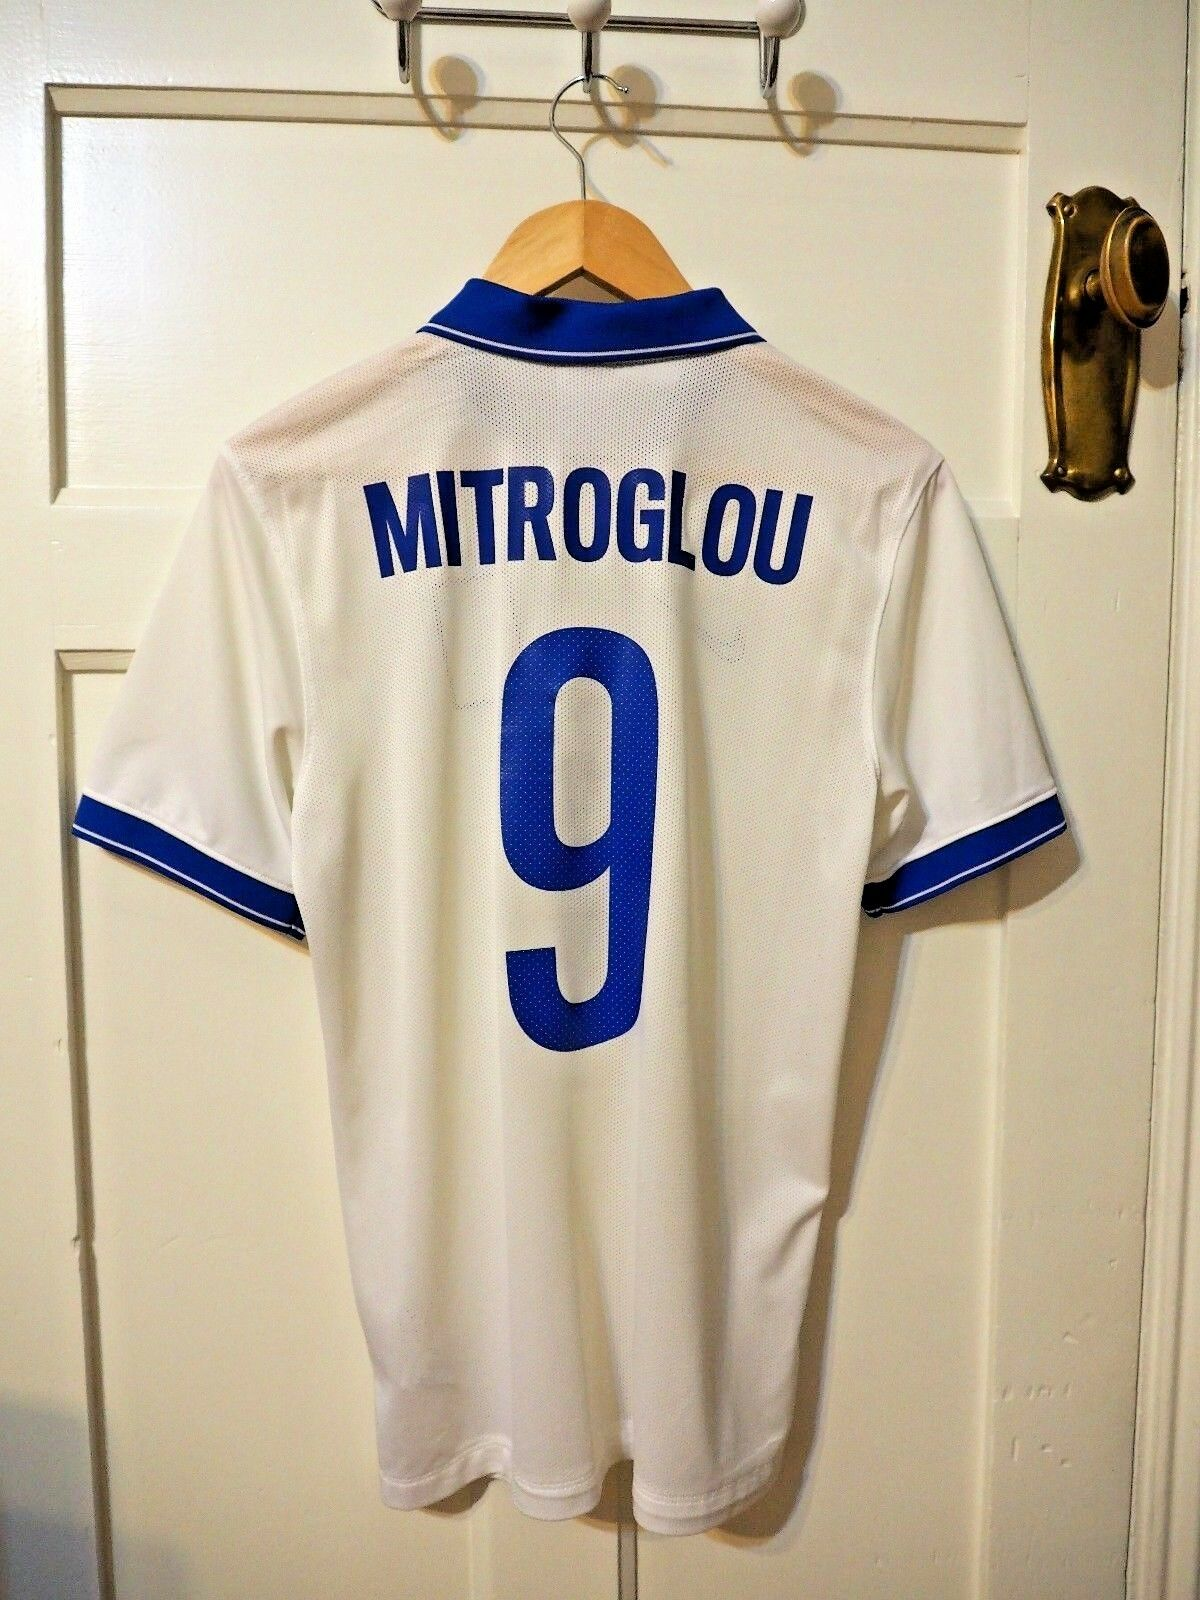 Grecia Nike Home Shirt Small 2014-2015 -  Mitroglou 9